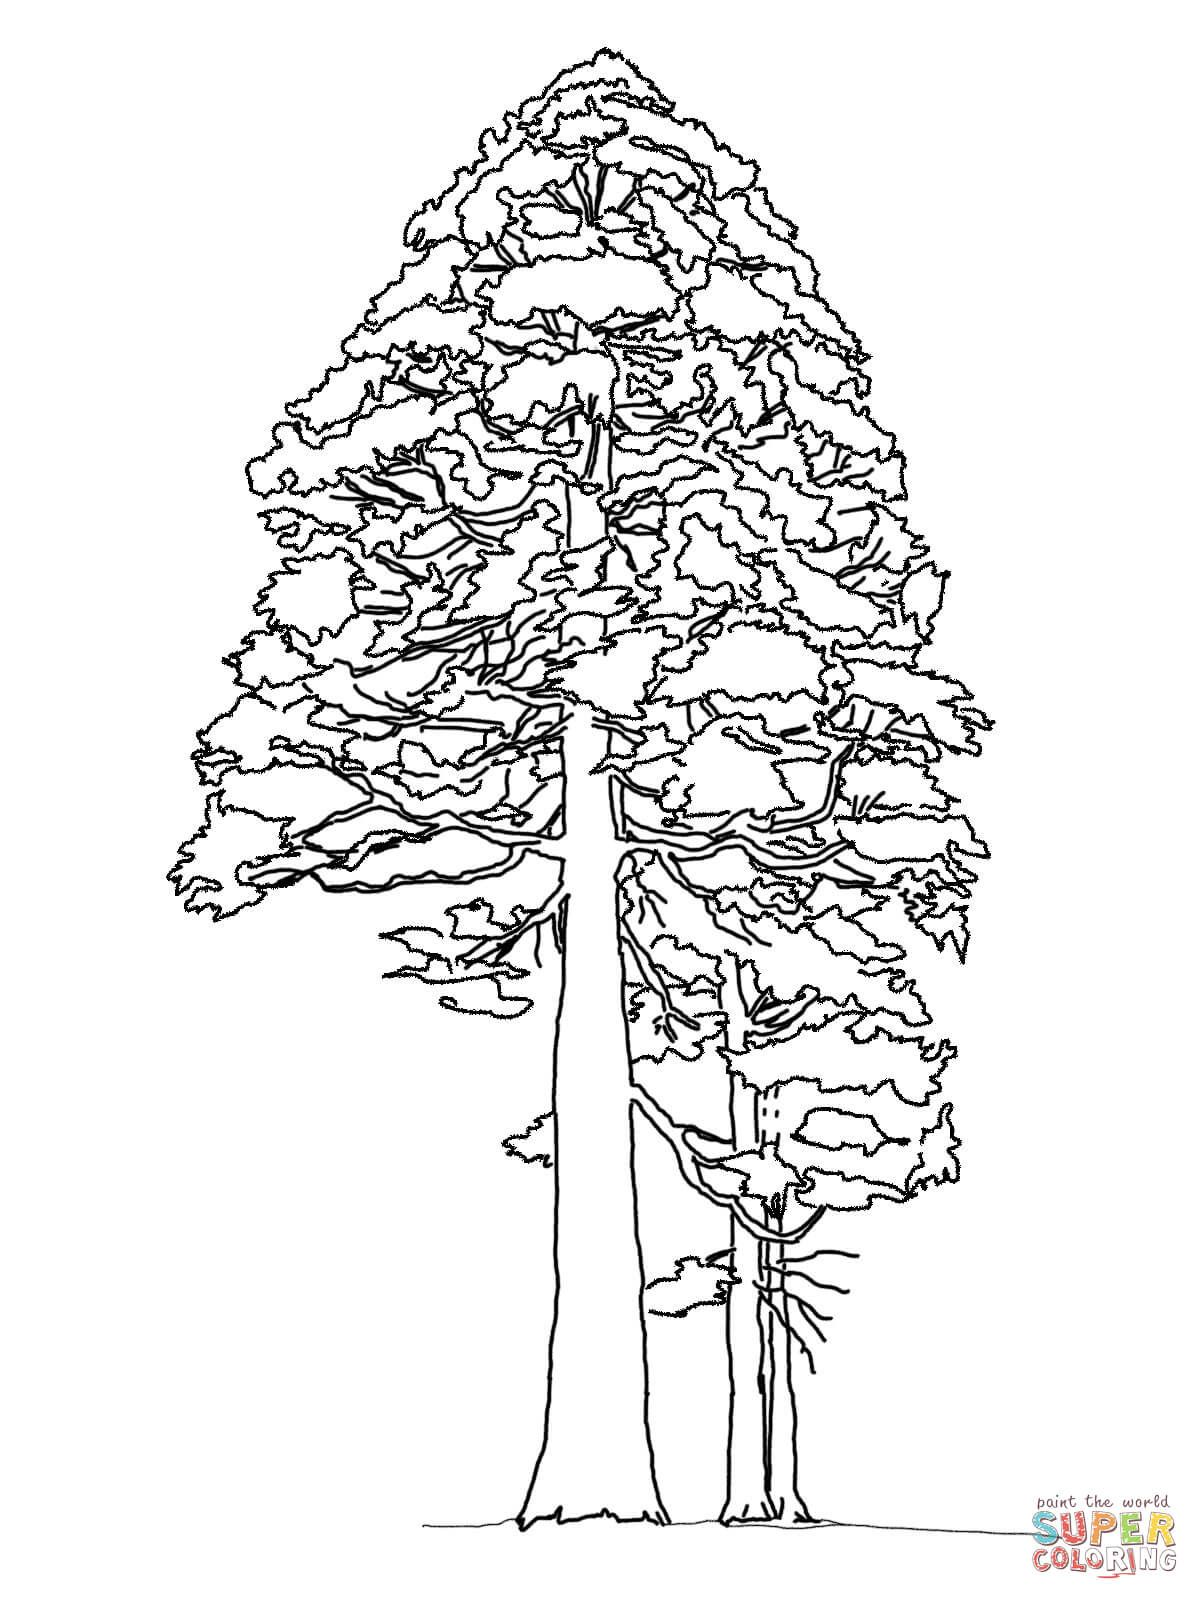 Giant Sequoia or Redwood coloring page Free Printable